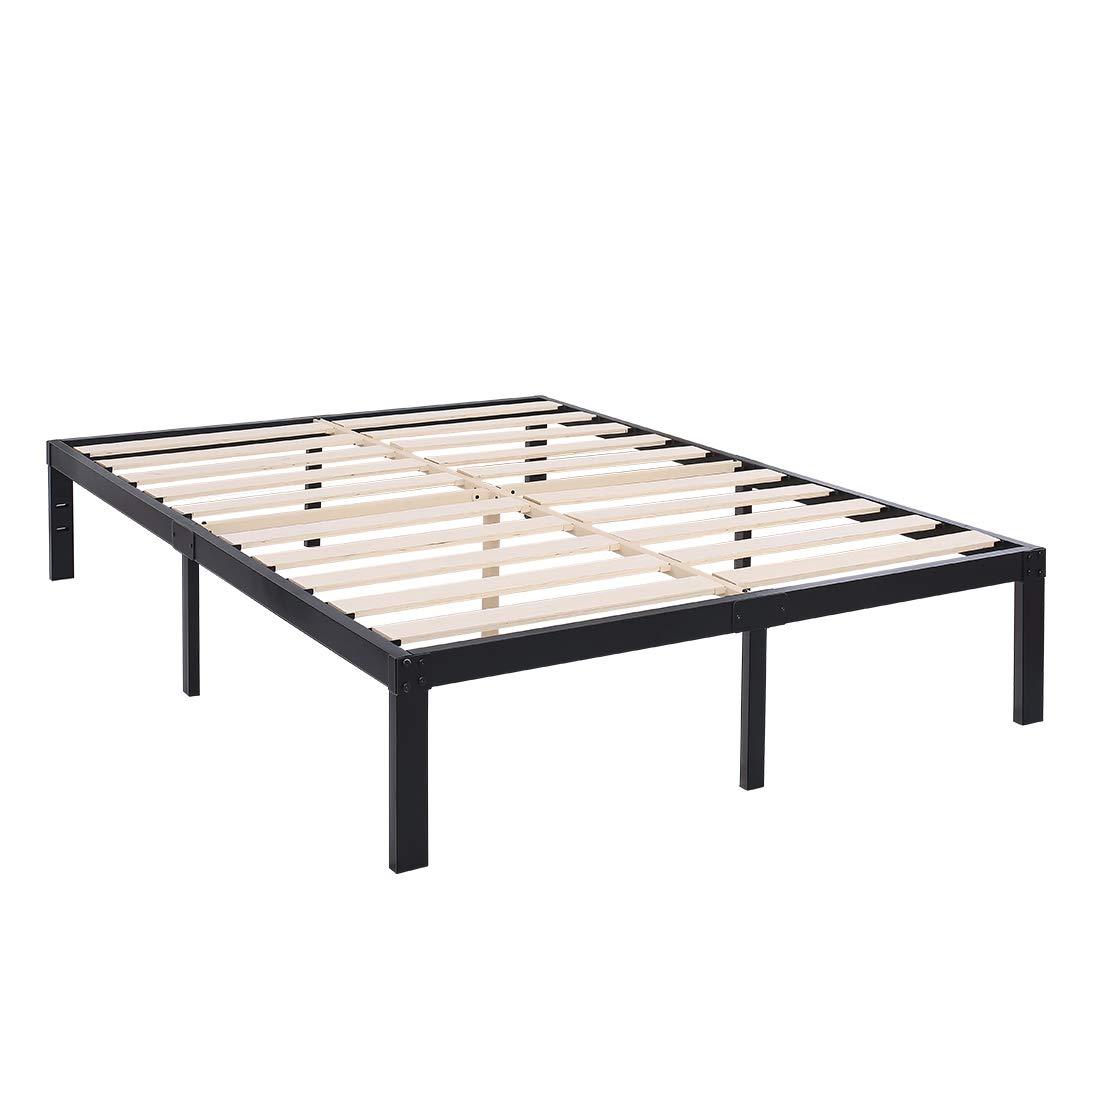 TATAGO 3500lbs Upgraded Heavy Duty Wooden Slats Platform Bed Frame, 14 Inch Tall Mattress Foundation, Extra-Strong Support, No Noise No Box Spring Needed, Queen